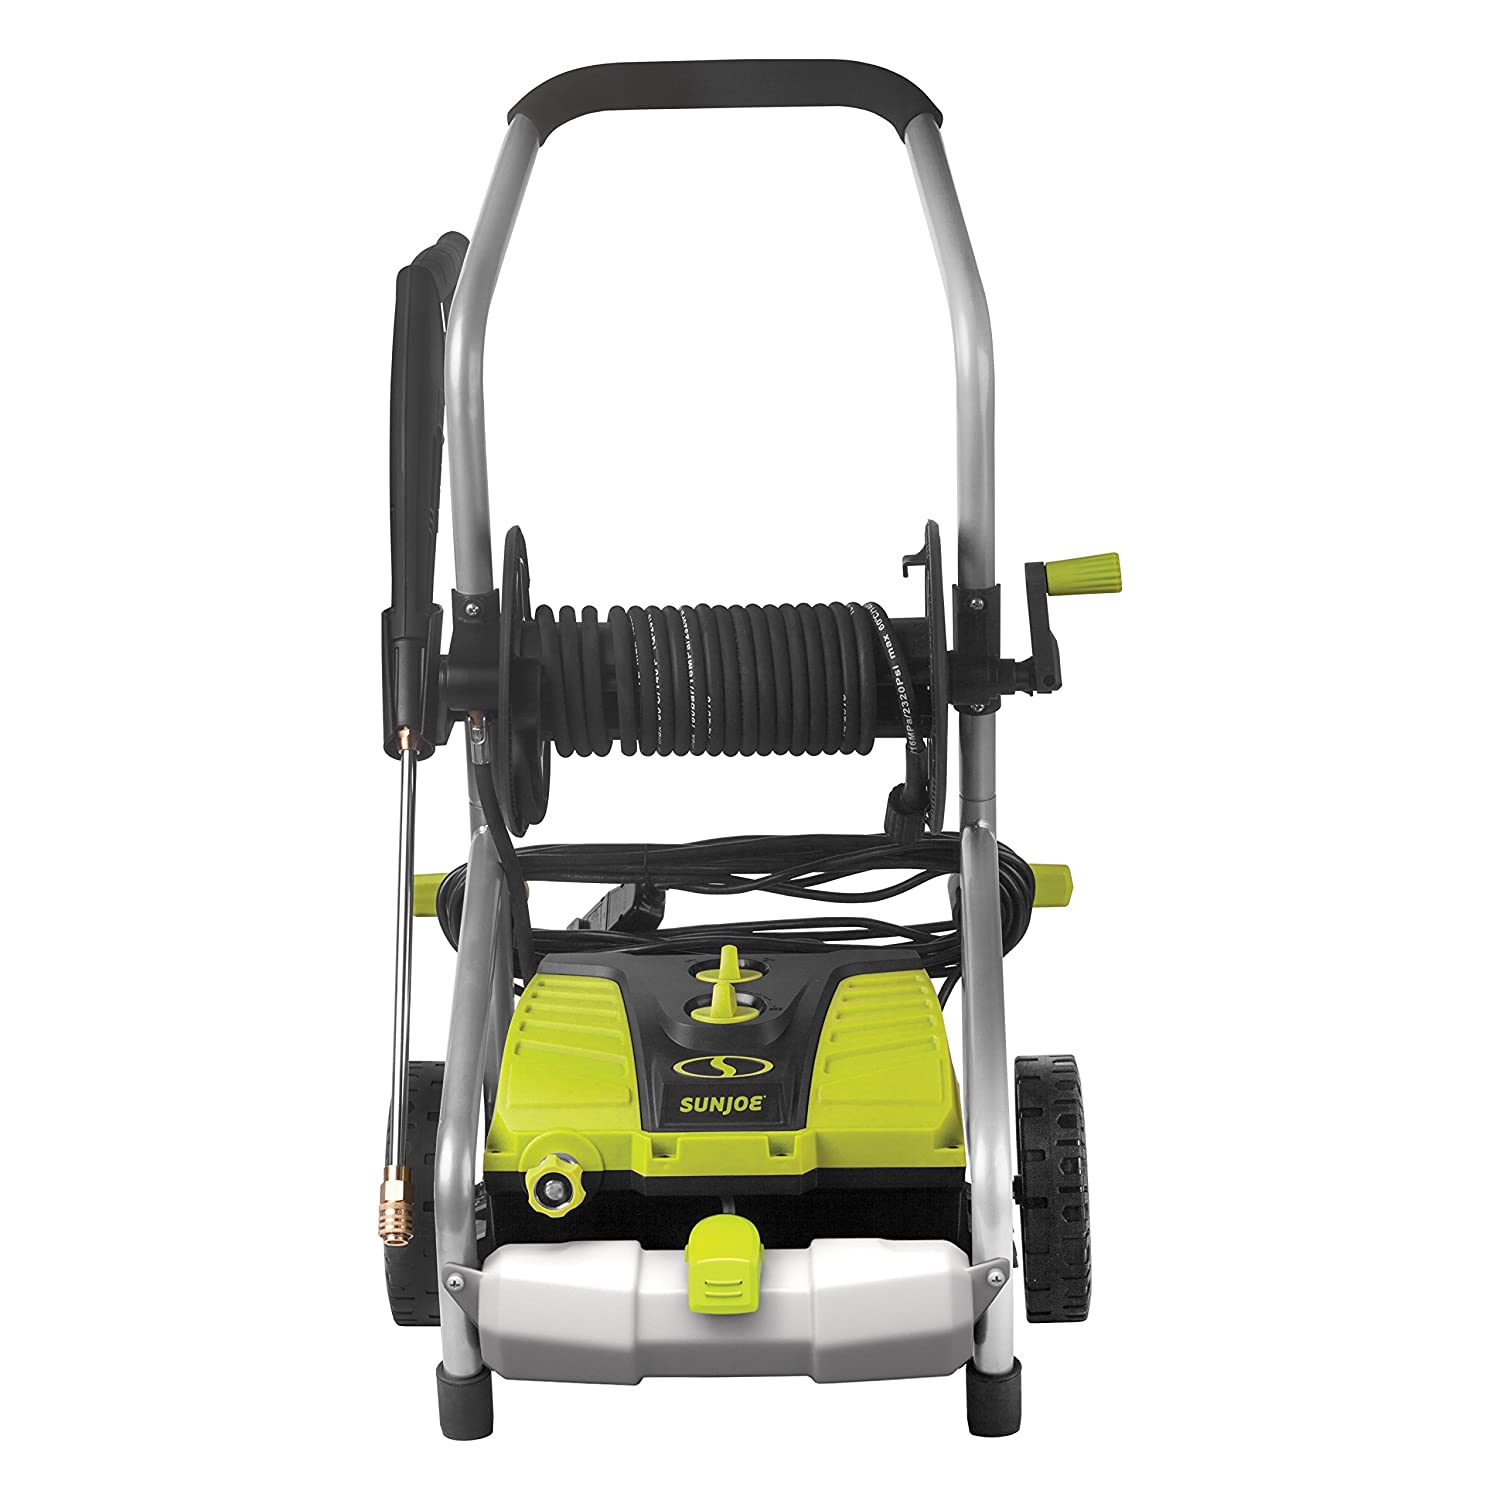 Sun Joe SPX4001 2030 PSI 1.76 GPM 14.5 Amp Electric Pressure Washer w/ Pressure Select Technology & Hose Reel